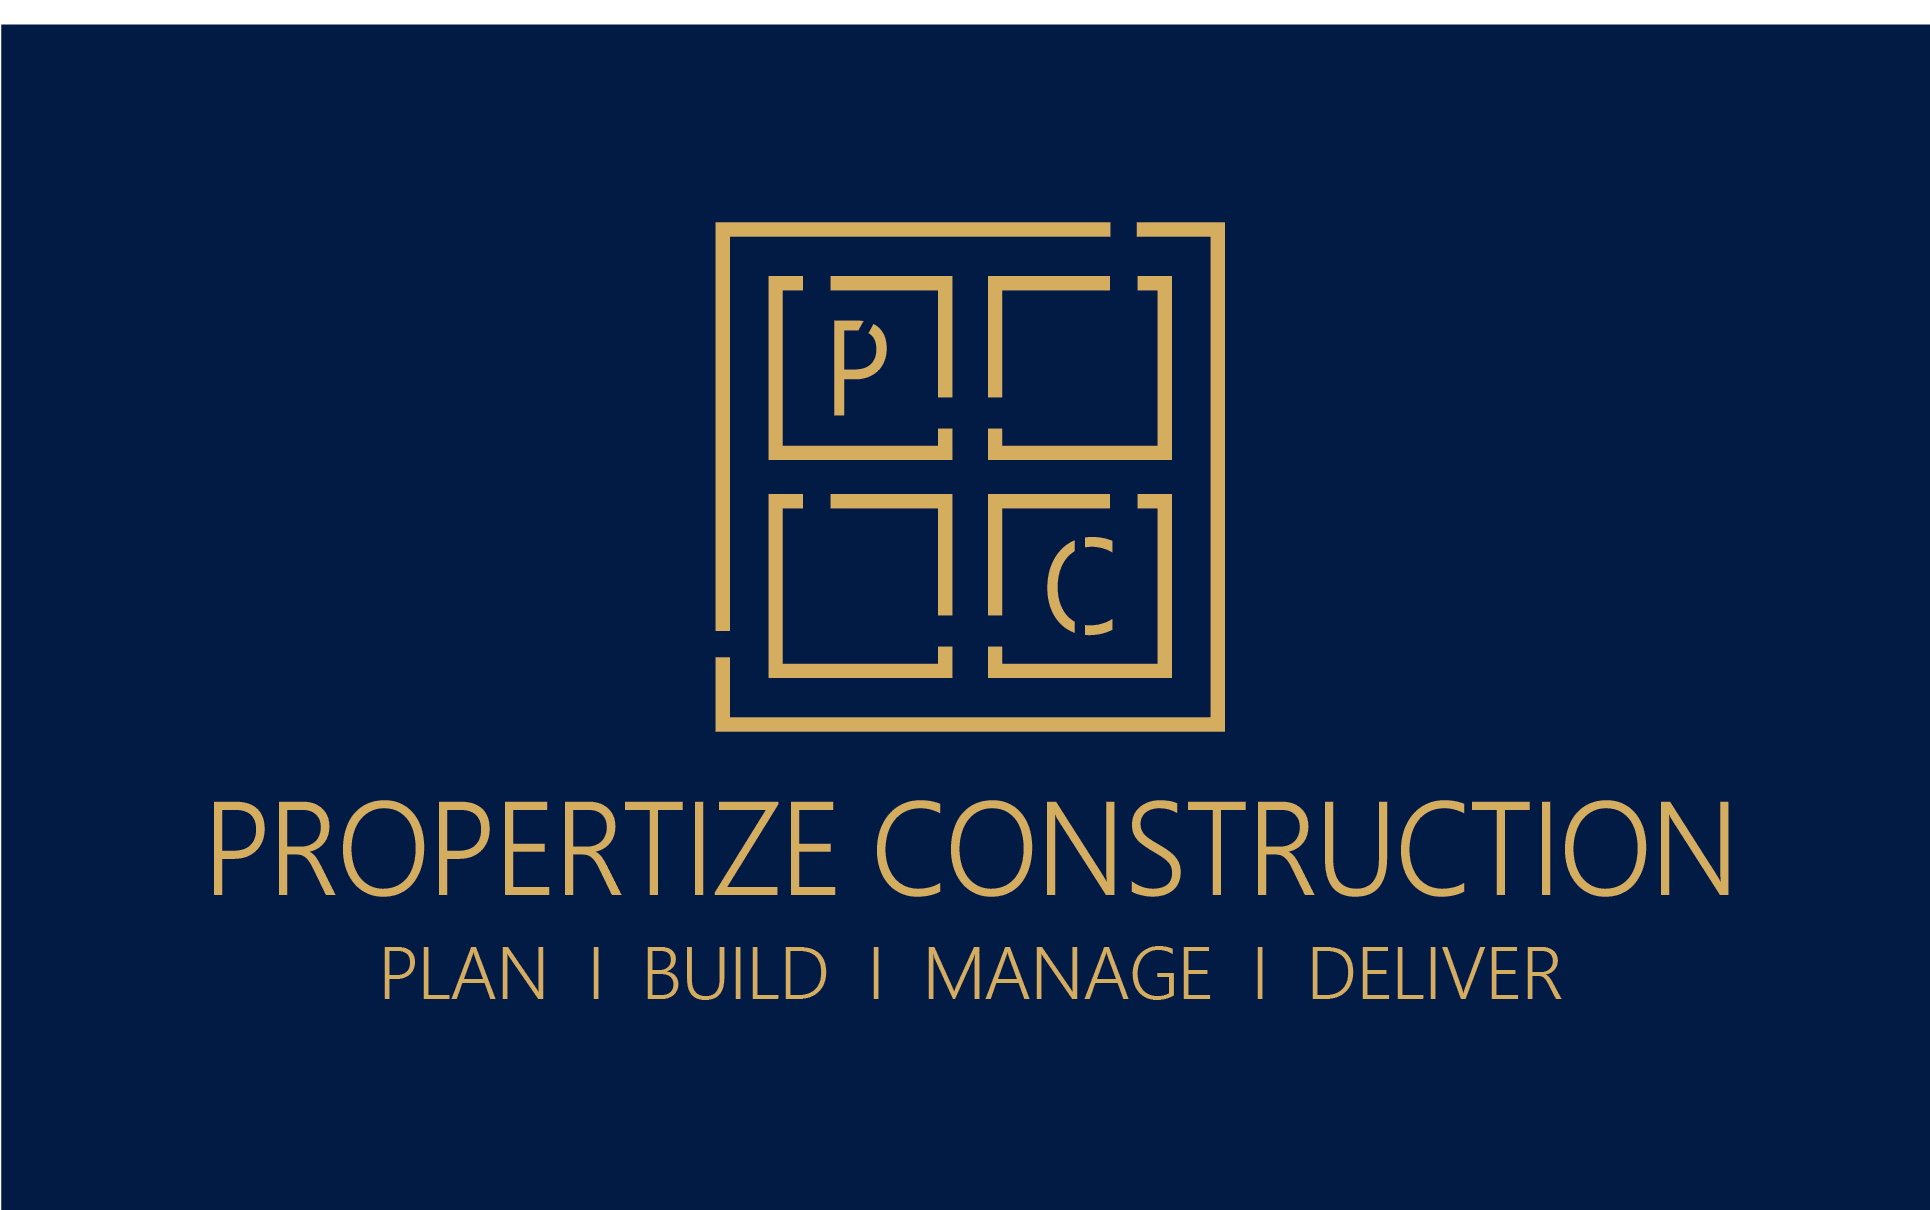 Propertize Construction